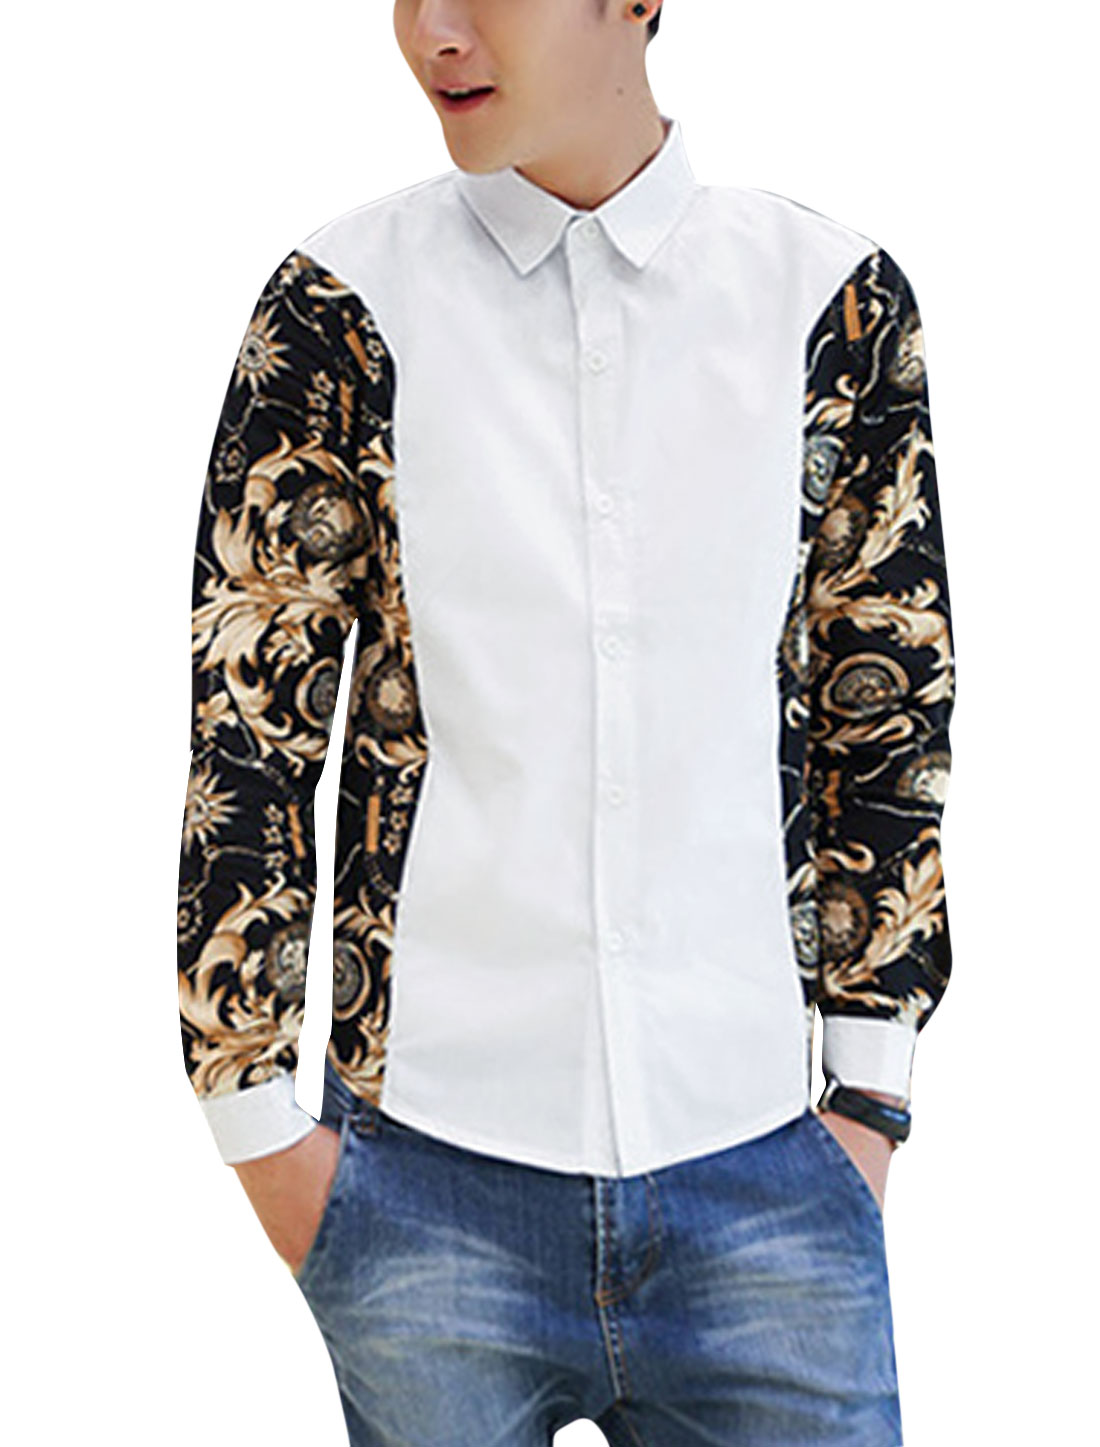 Men Contrast Floral Pocket Watch Print Buttoned Cuffs Stylish Shirt White M